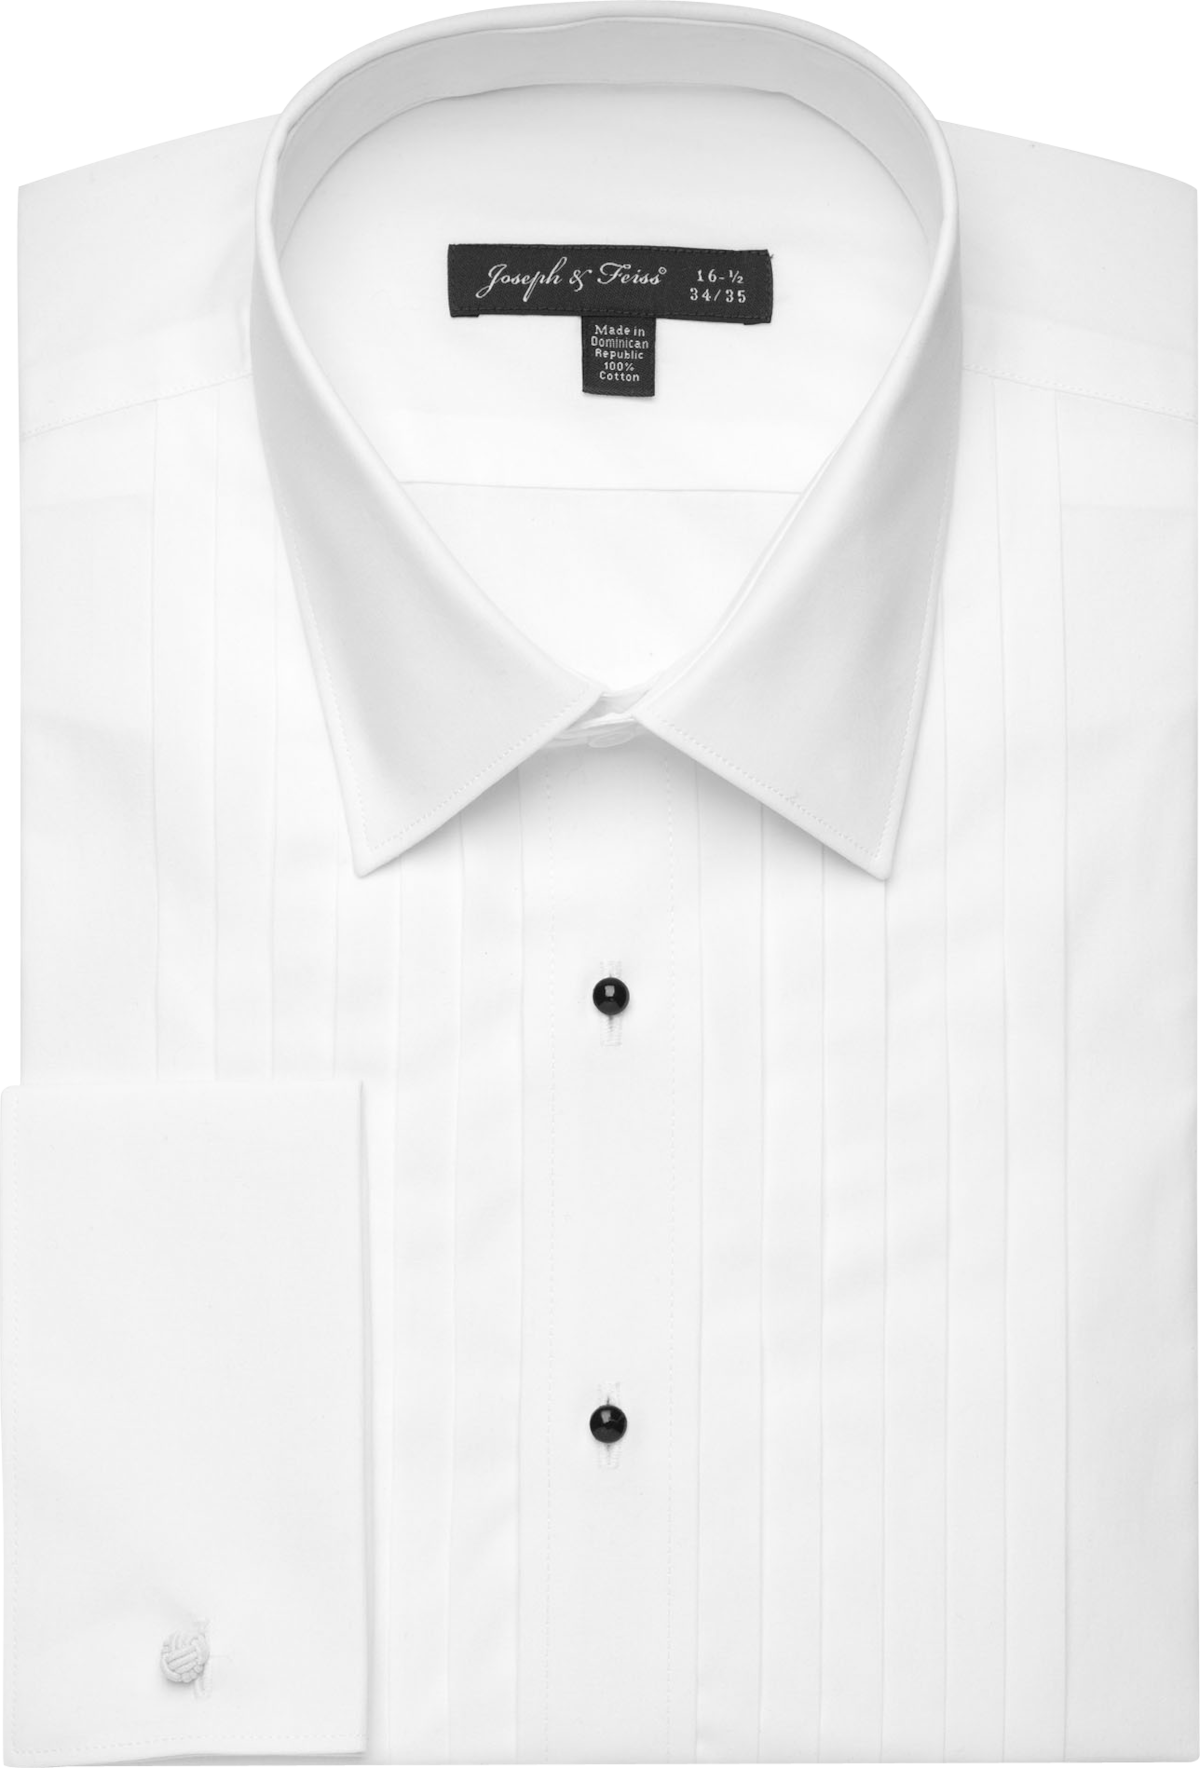 Dress Shirts Clearance, Shop Closeout Men's Dress Shirts | Men's ...